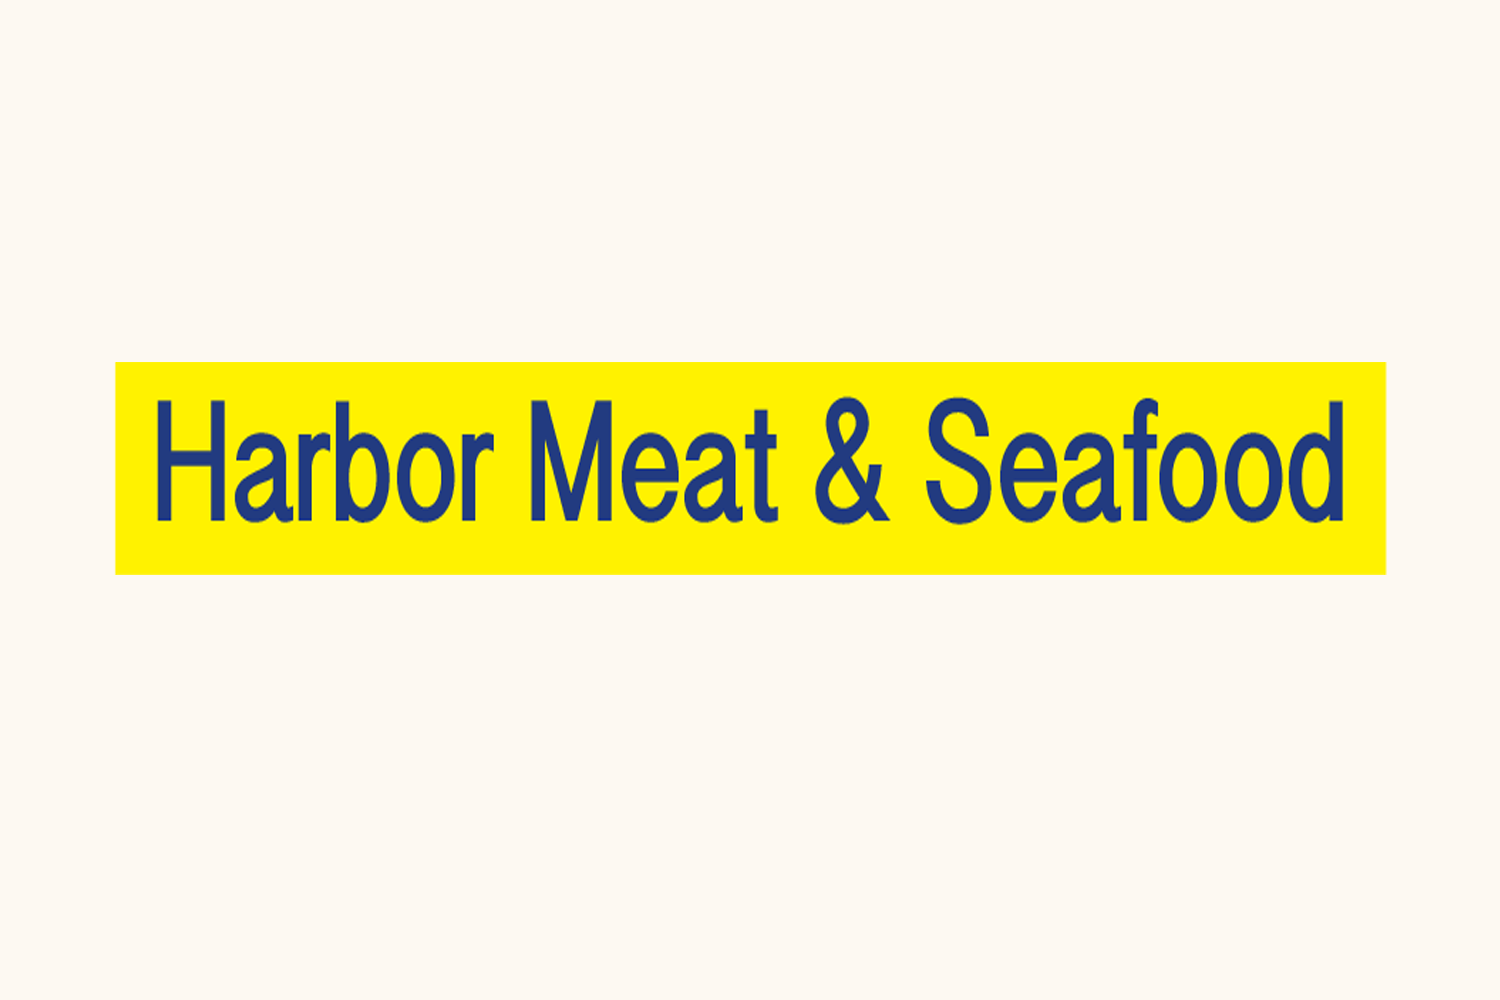 Harbor Meat & Seafood